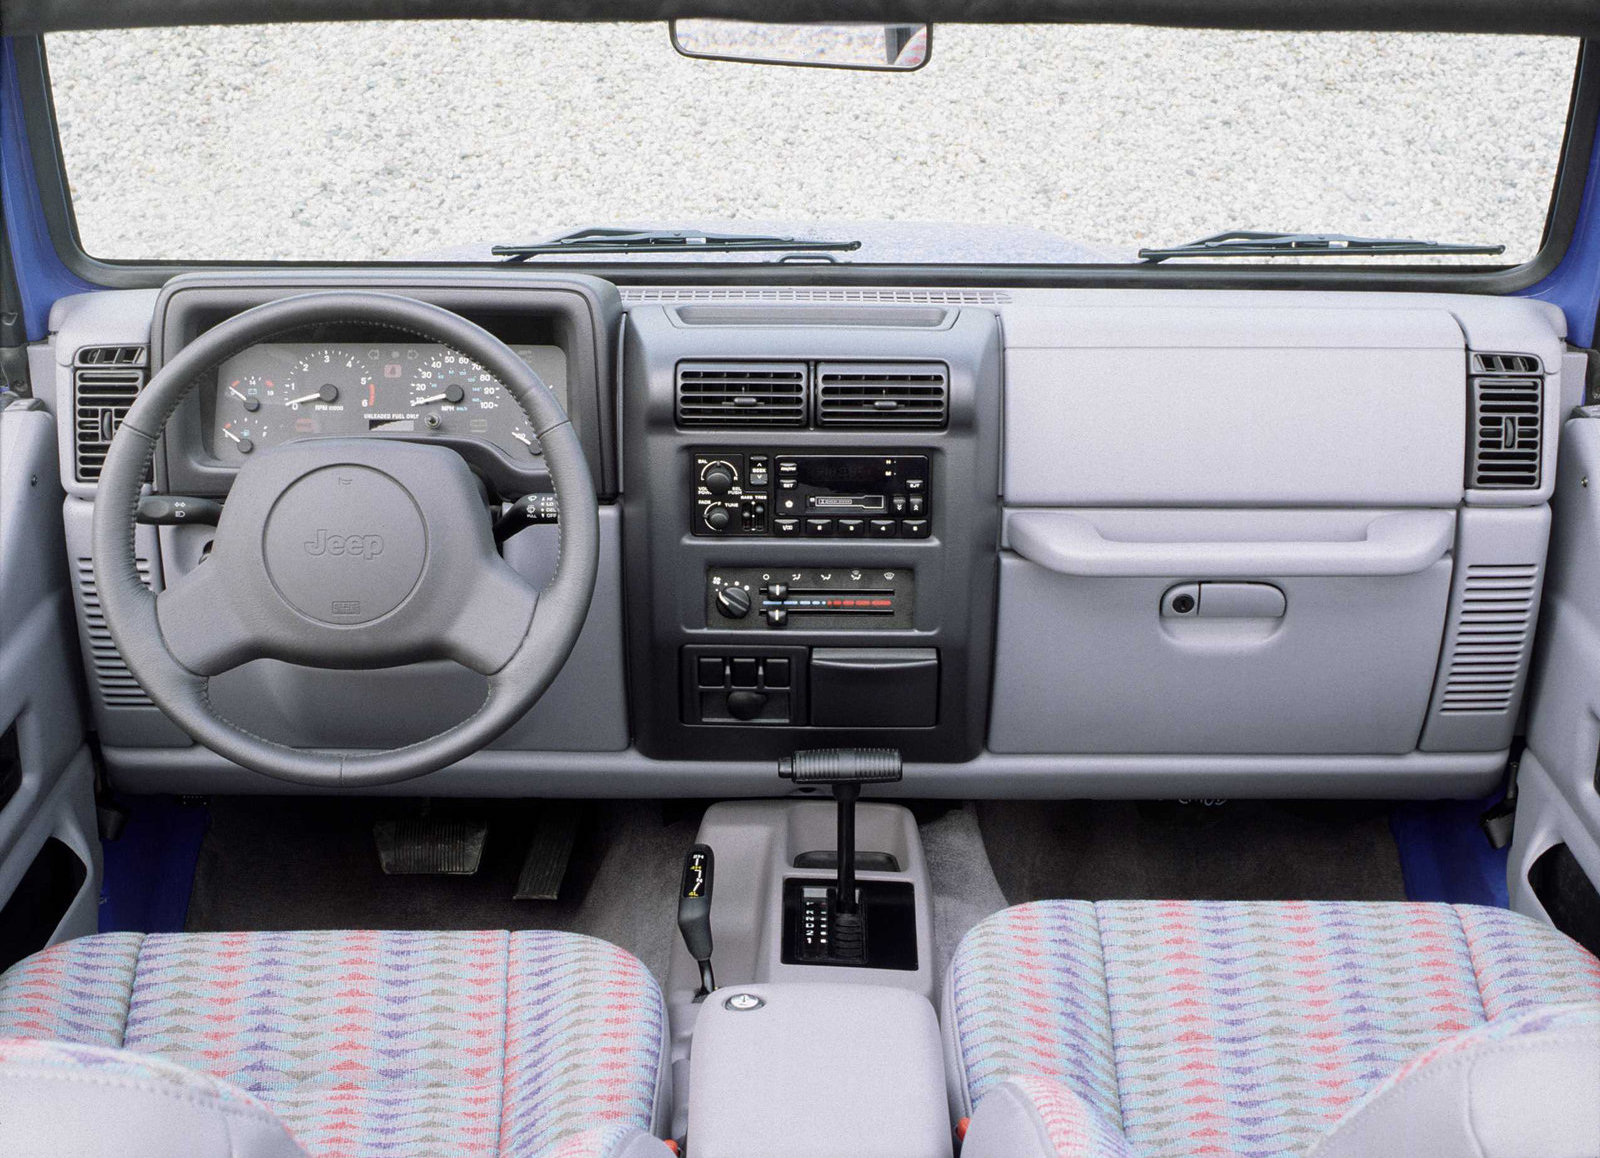 1997 Jeep Wrangler interior